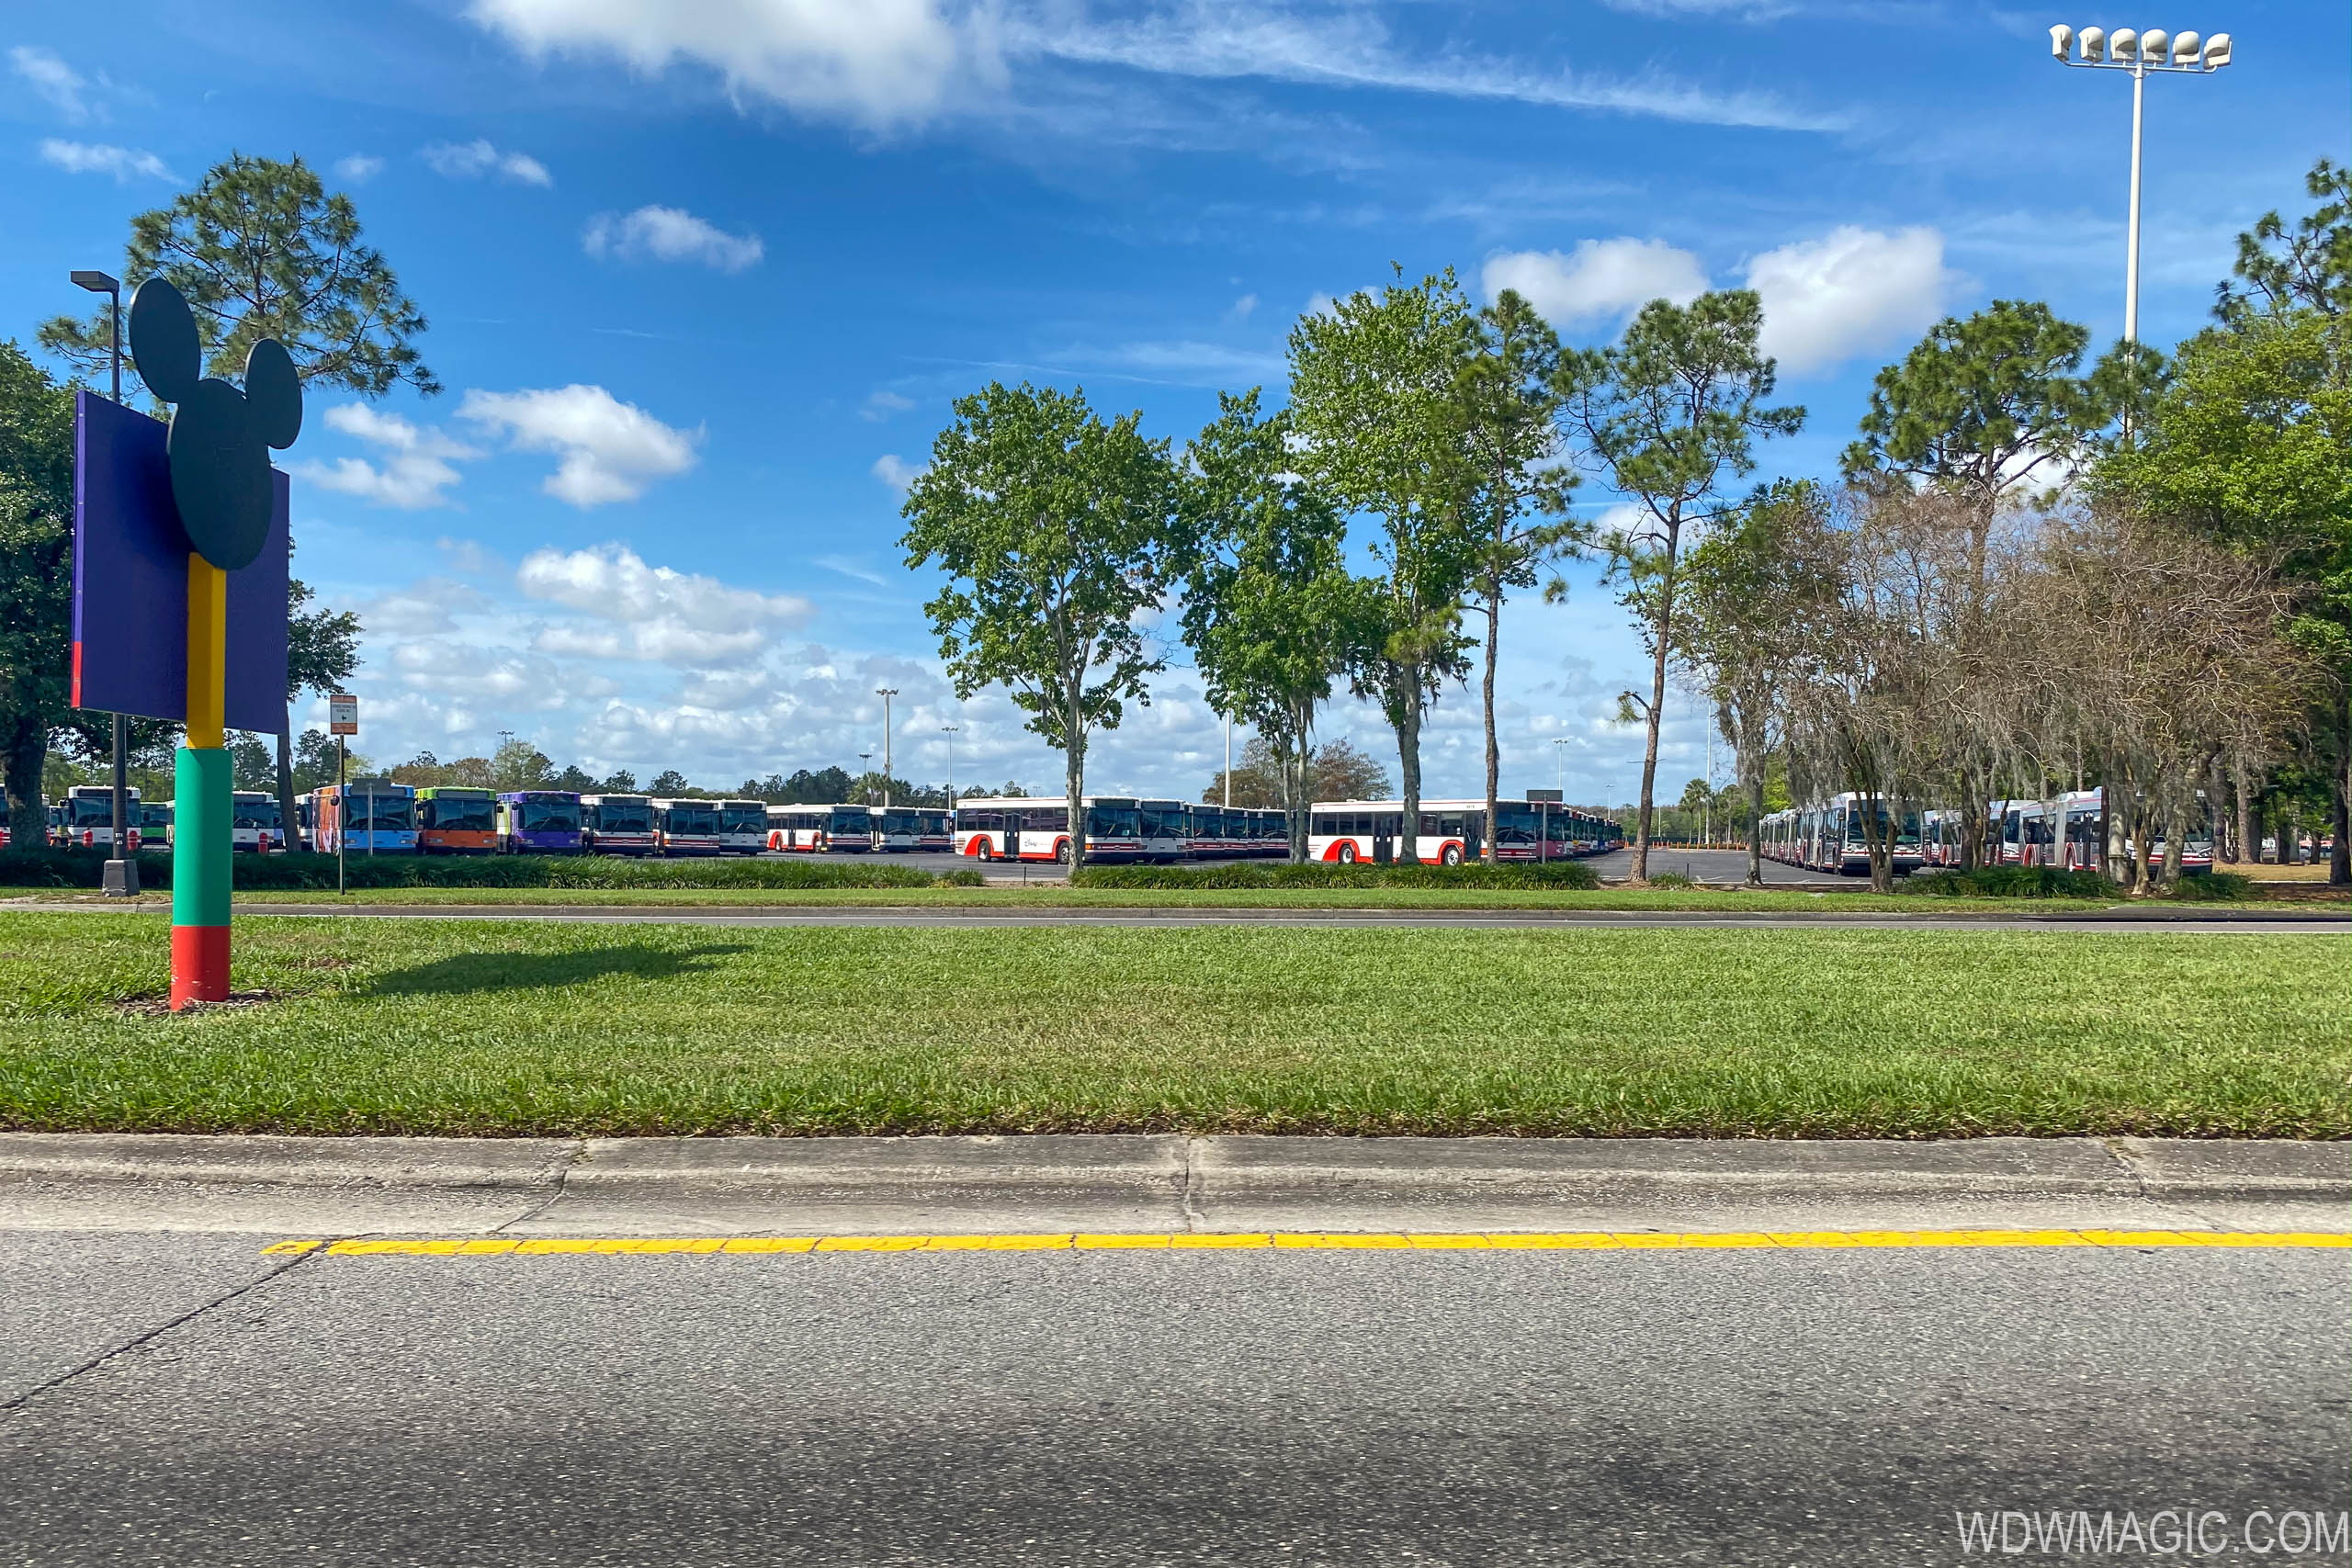 PHOTOS - All Walt Disney World transportation services now suspended